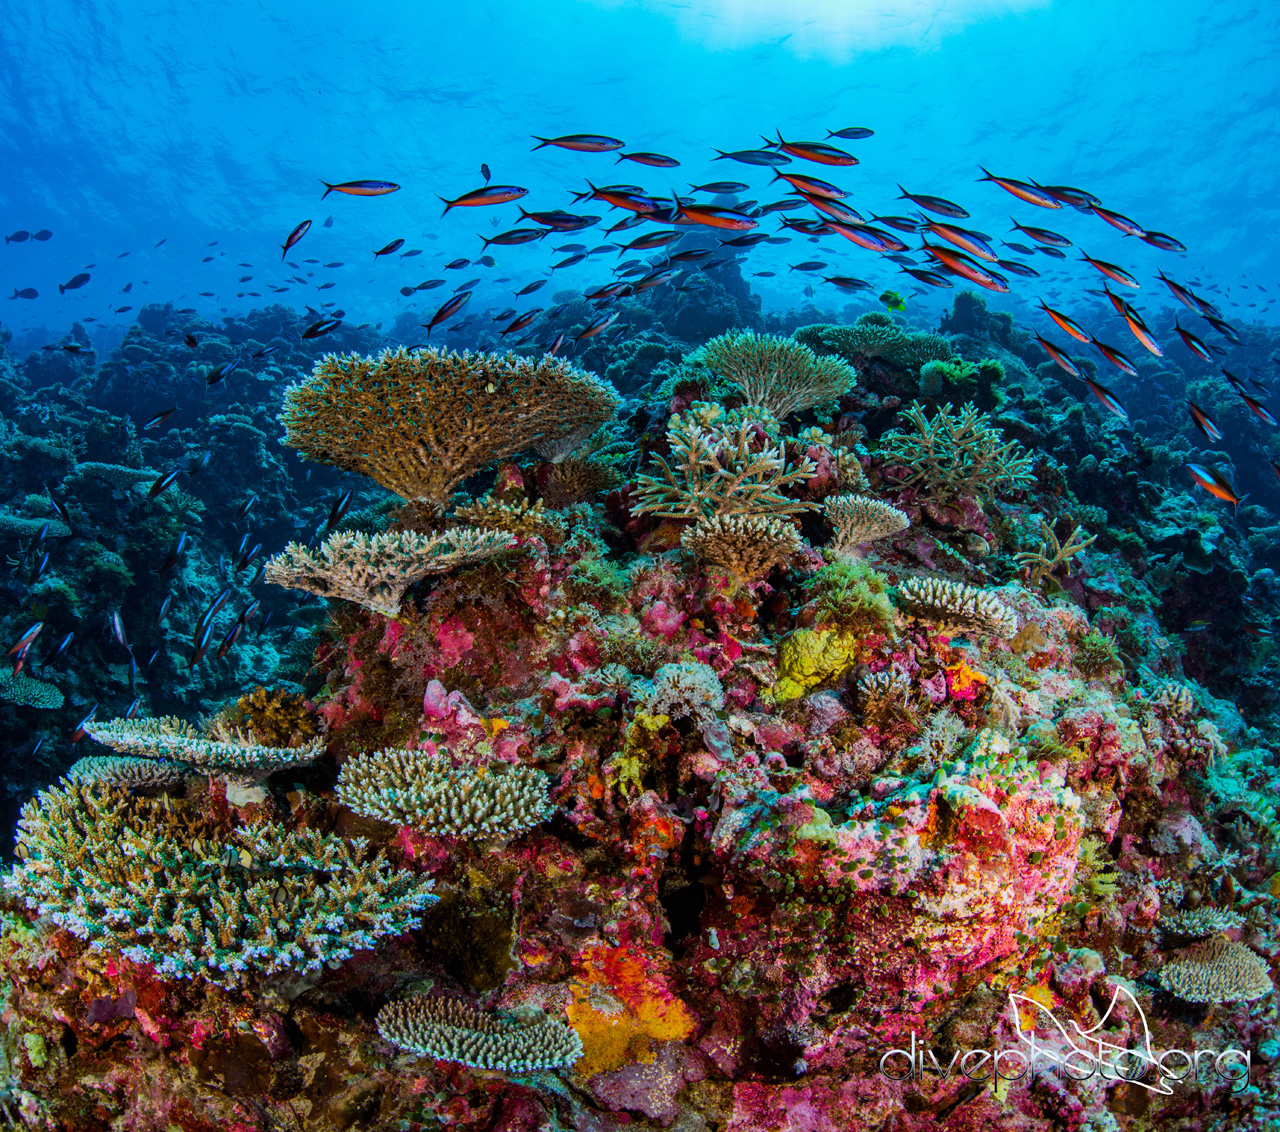 A coral reef ecosystem in the Sulug Sea, Borneo. Photo courtesy of Greg Asner / DivePhoto.org